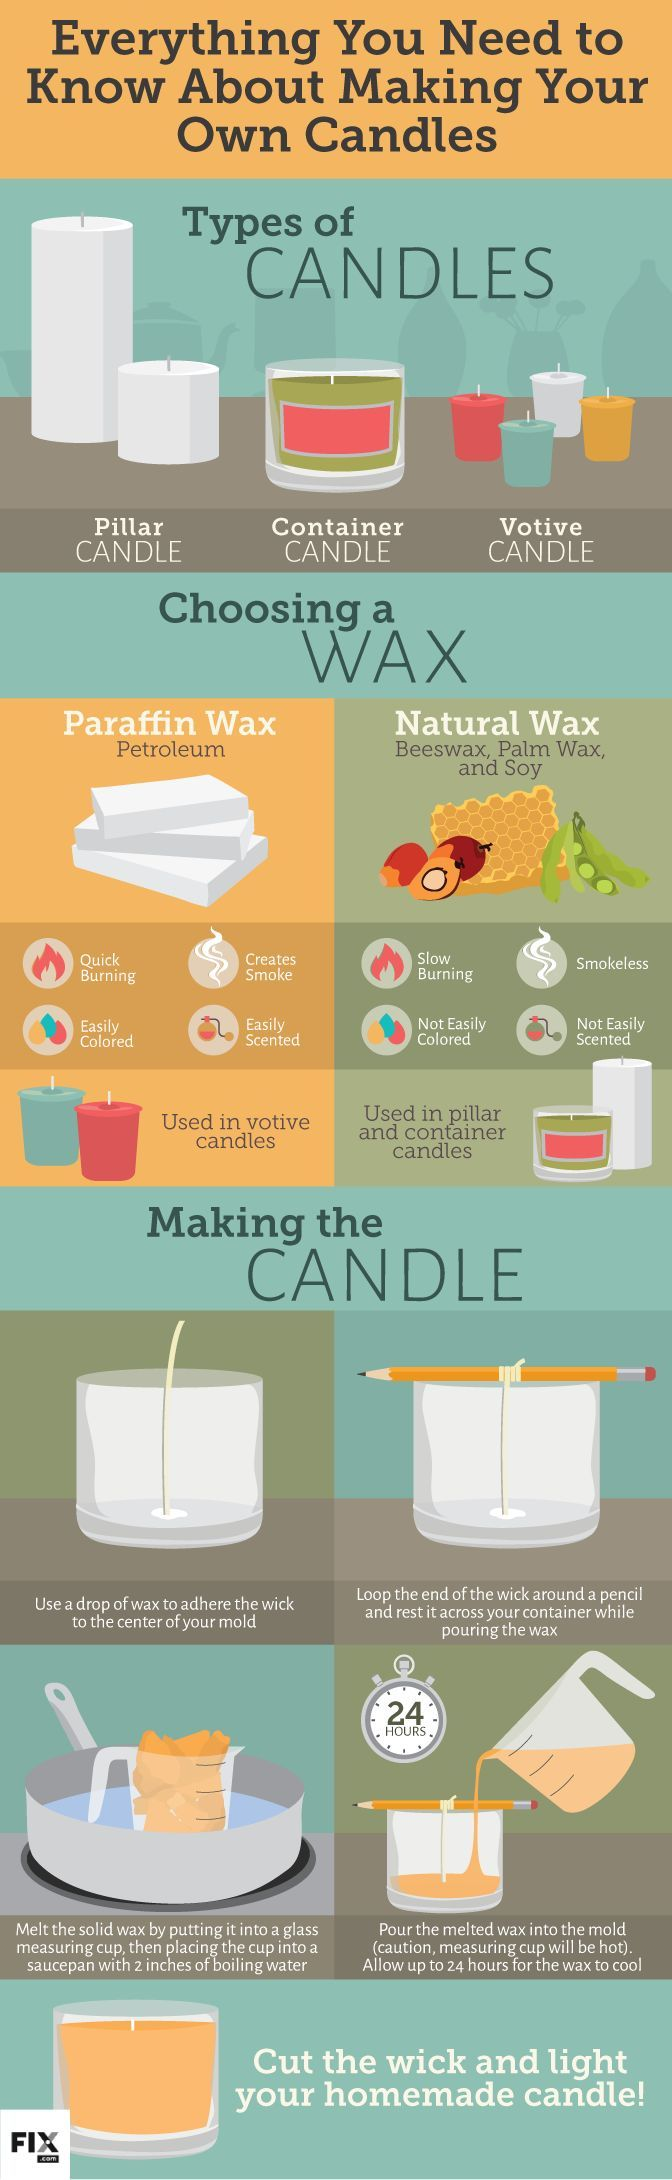 Making your own candles has never been so fun and easy! With so many different color and scent options, learn how you can spruce up your